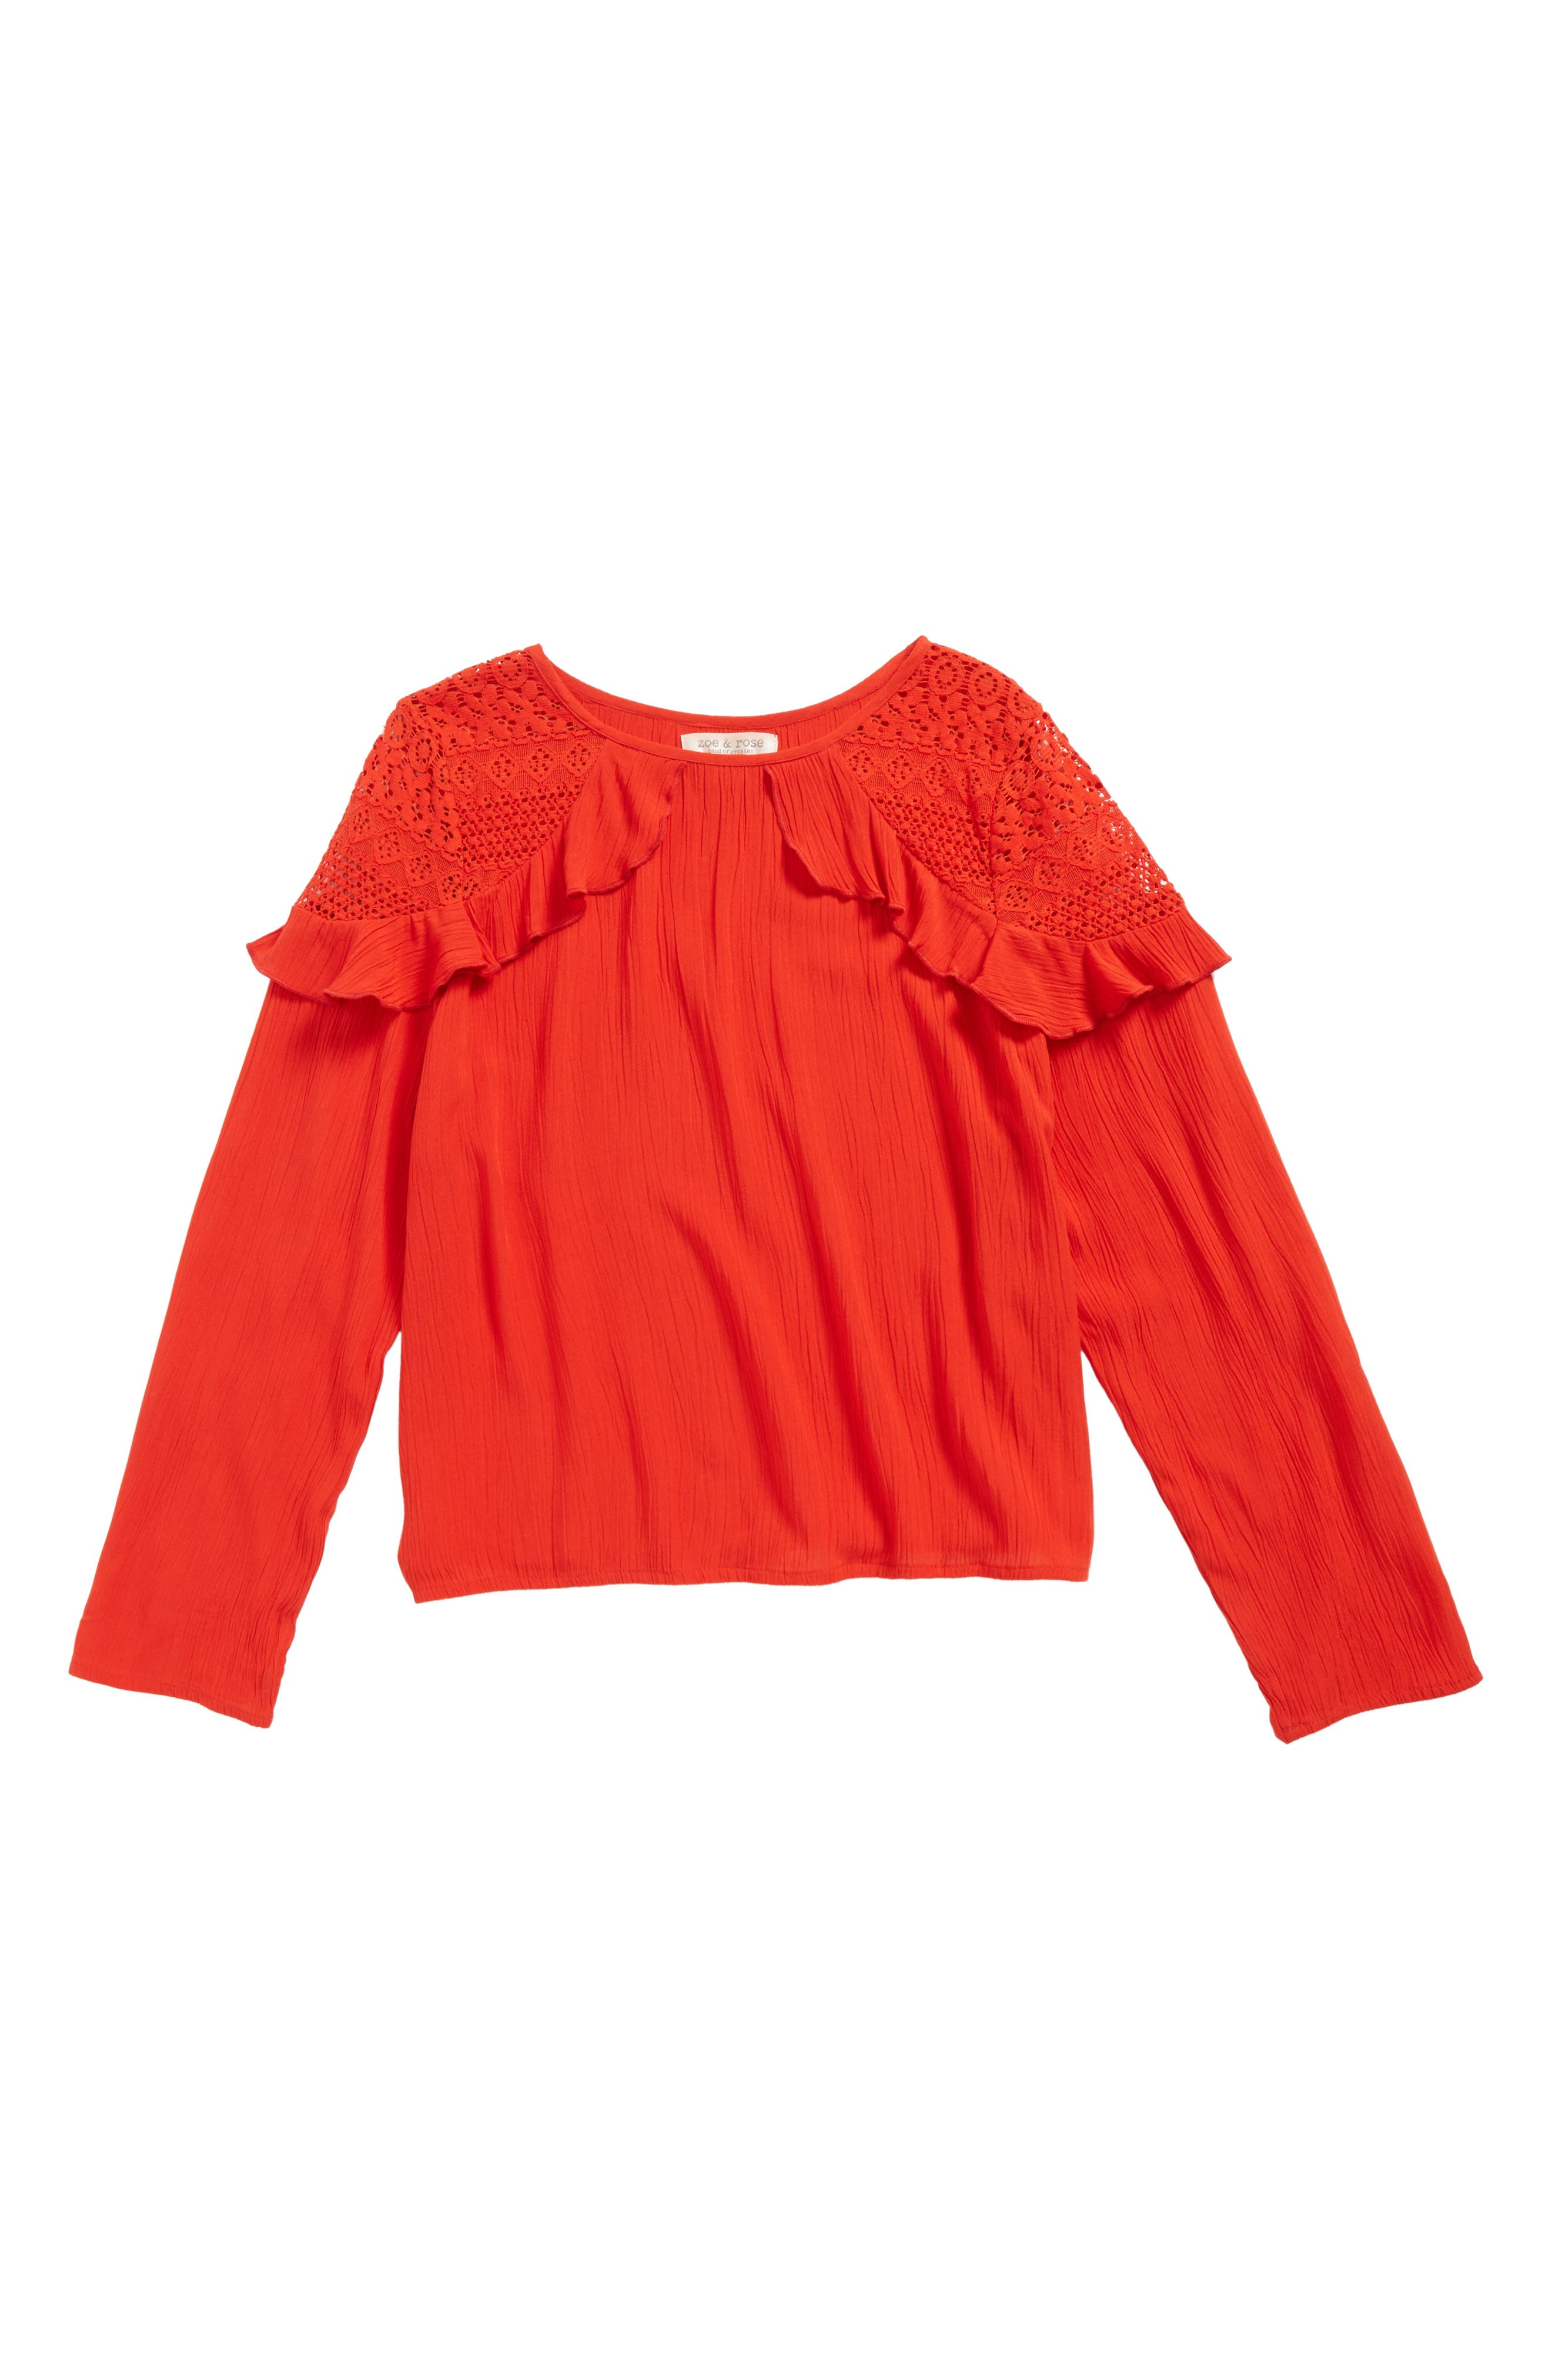 Ruffle Top,                         Main,                         color, Red